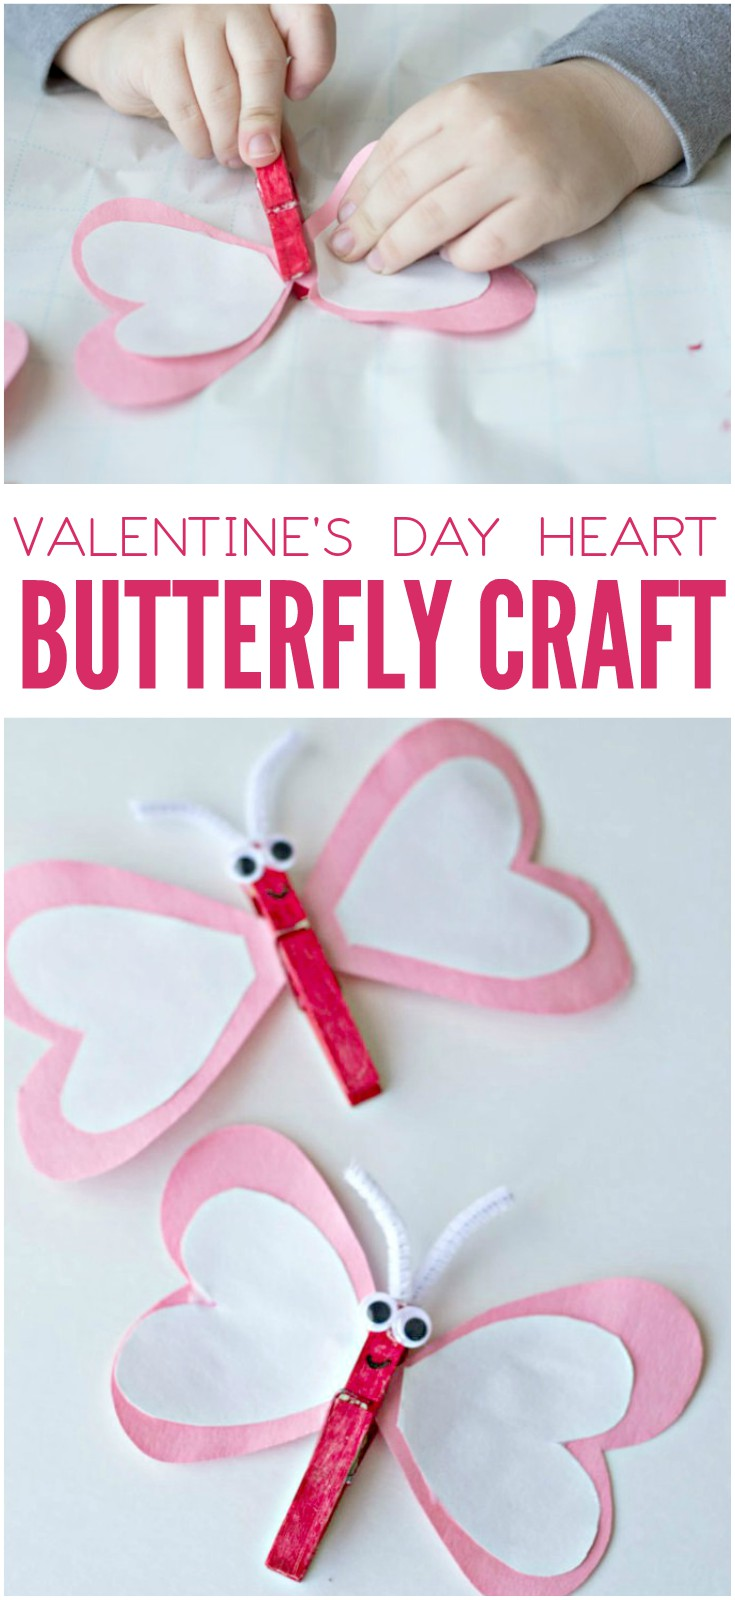 This heart butterfly craft for Valentine's Day is so cute! With heart-shaped wings and red, pink and white colors, the kids will